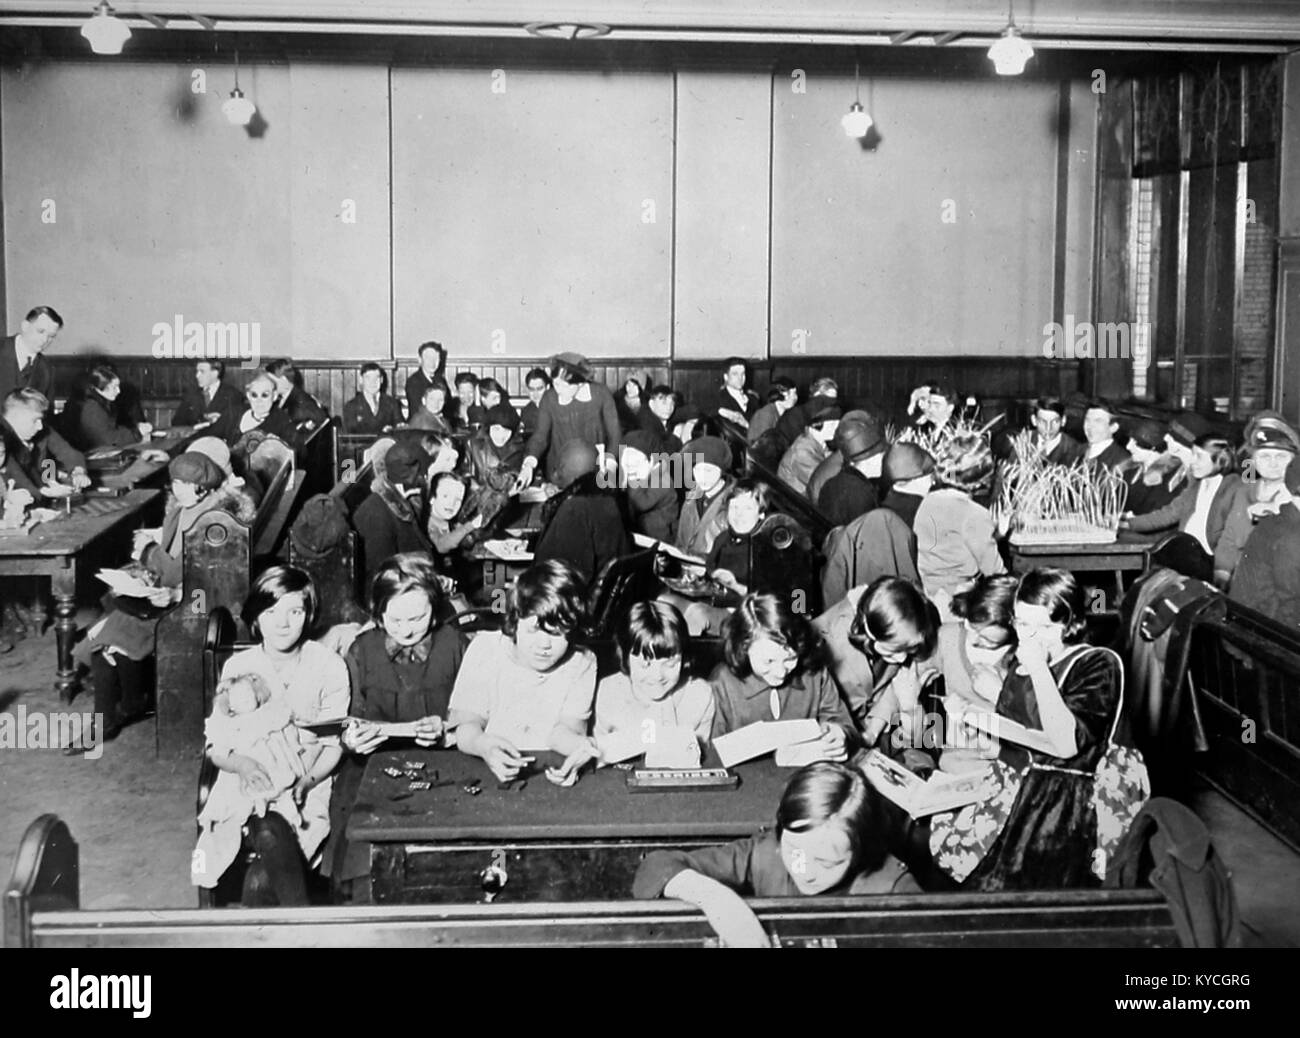 Children at a 'Cripples Guild' meeting, probably 1930s - Stock Image